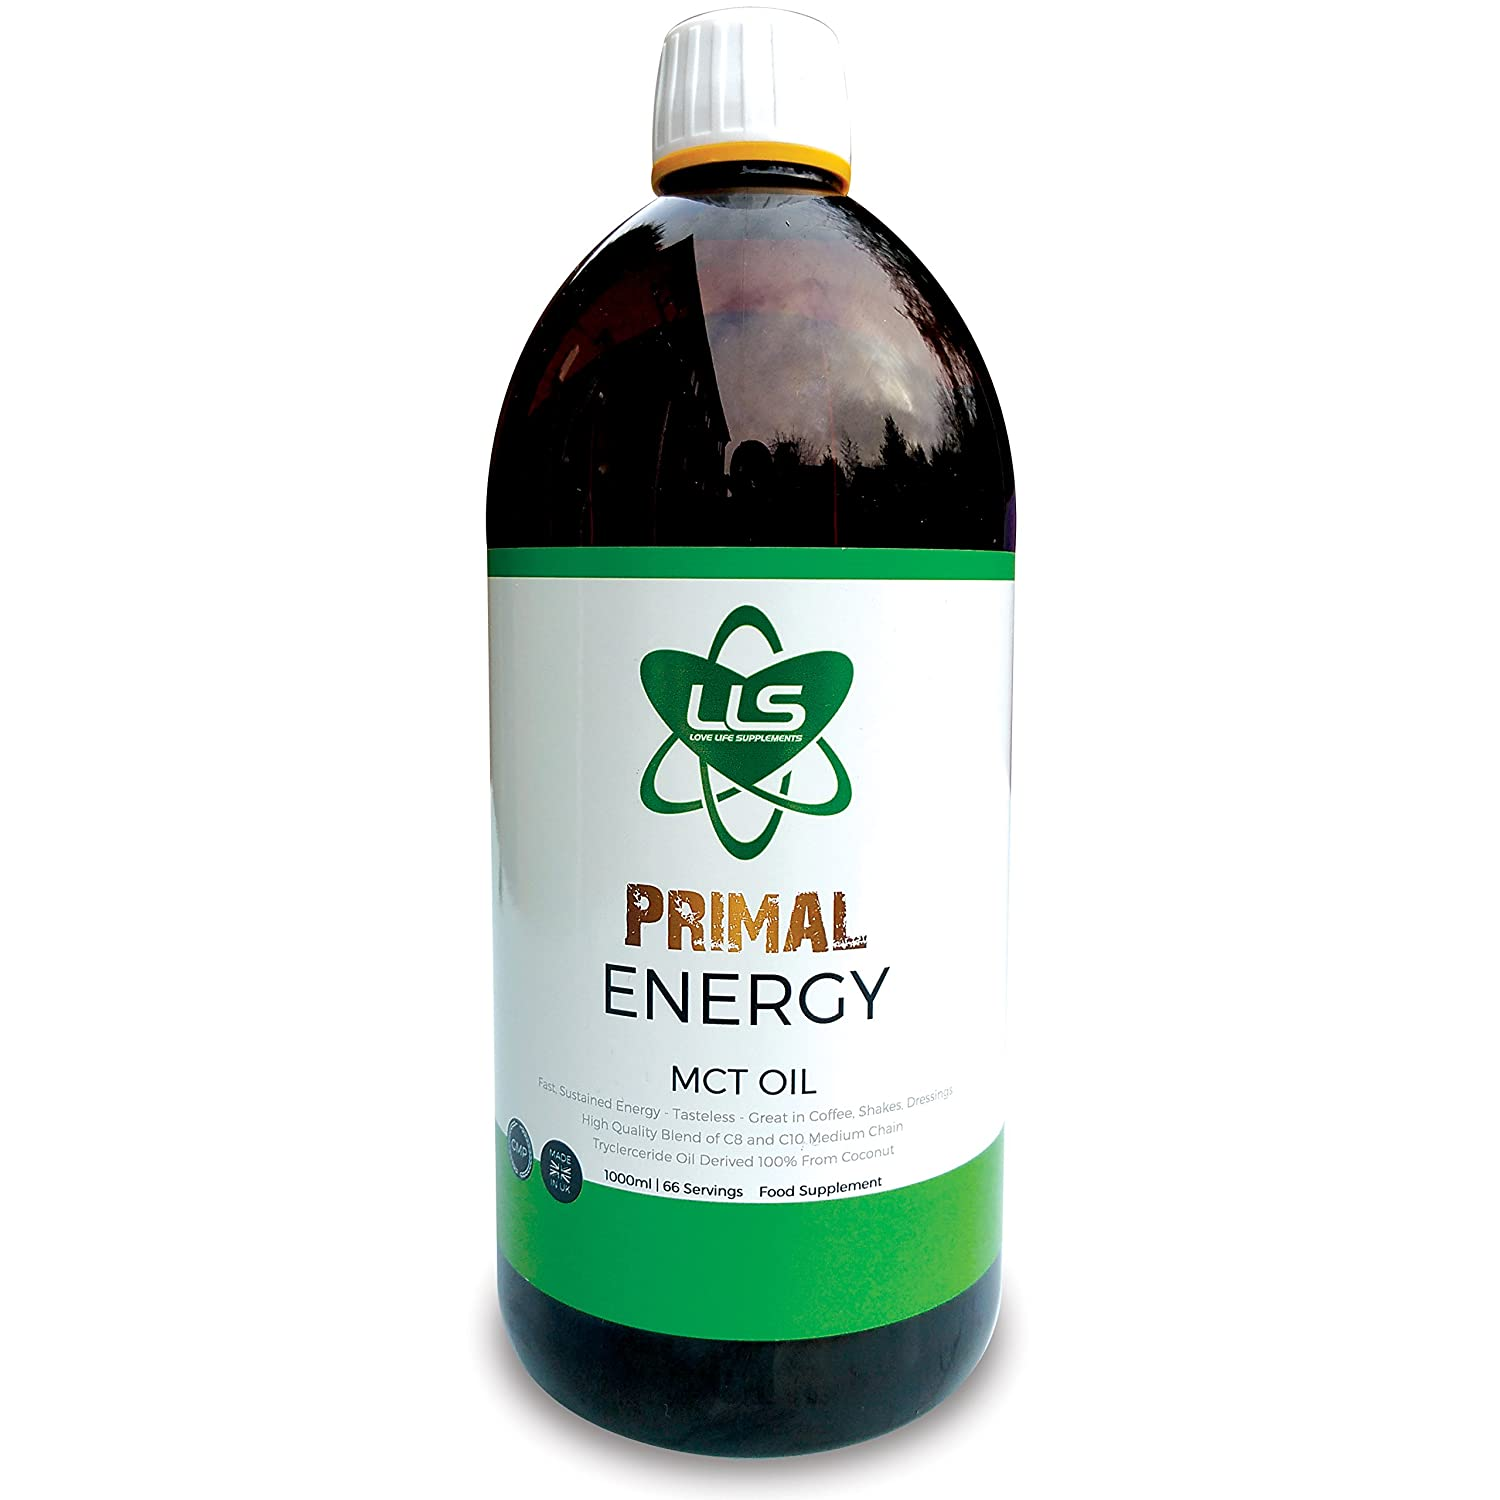 Lls primal energy c8 mct oil the only gmp certified c8 mct on lls primal energy mct oil 1000ml bottle 100 coconut medium chain tryglycerides xflitez Choice Image